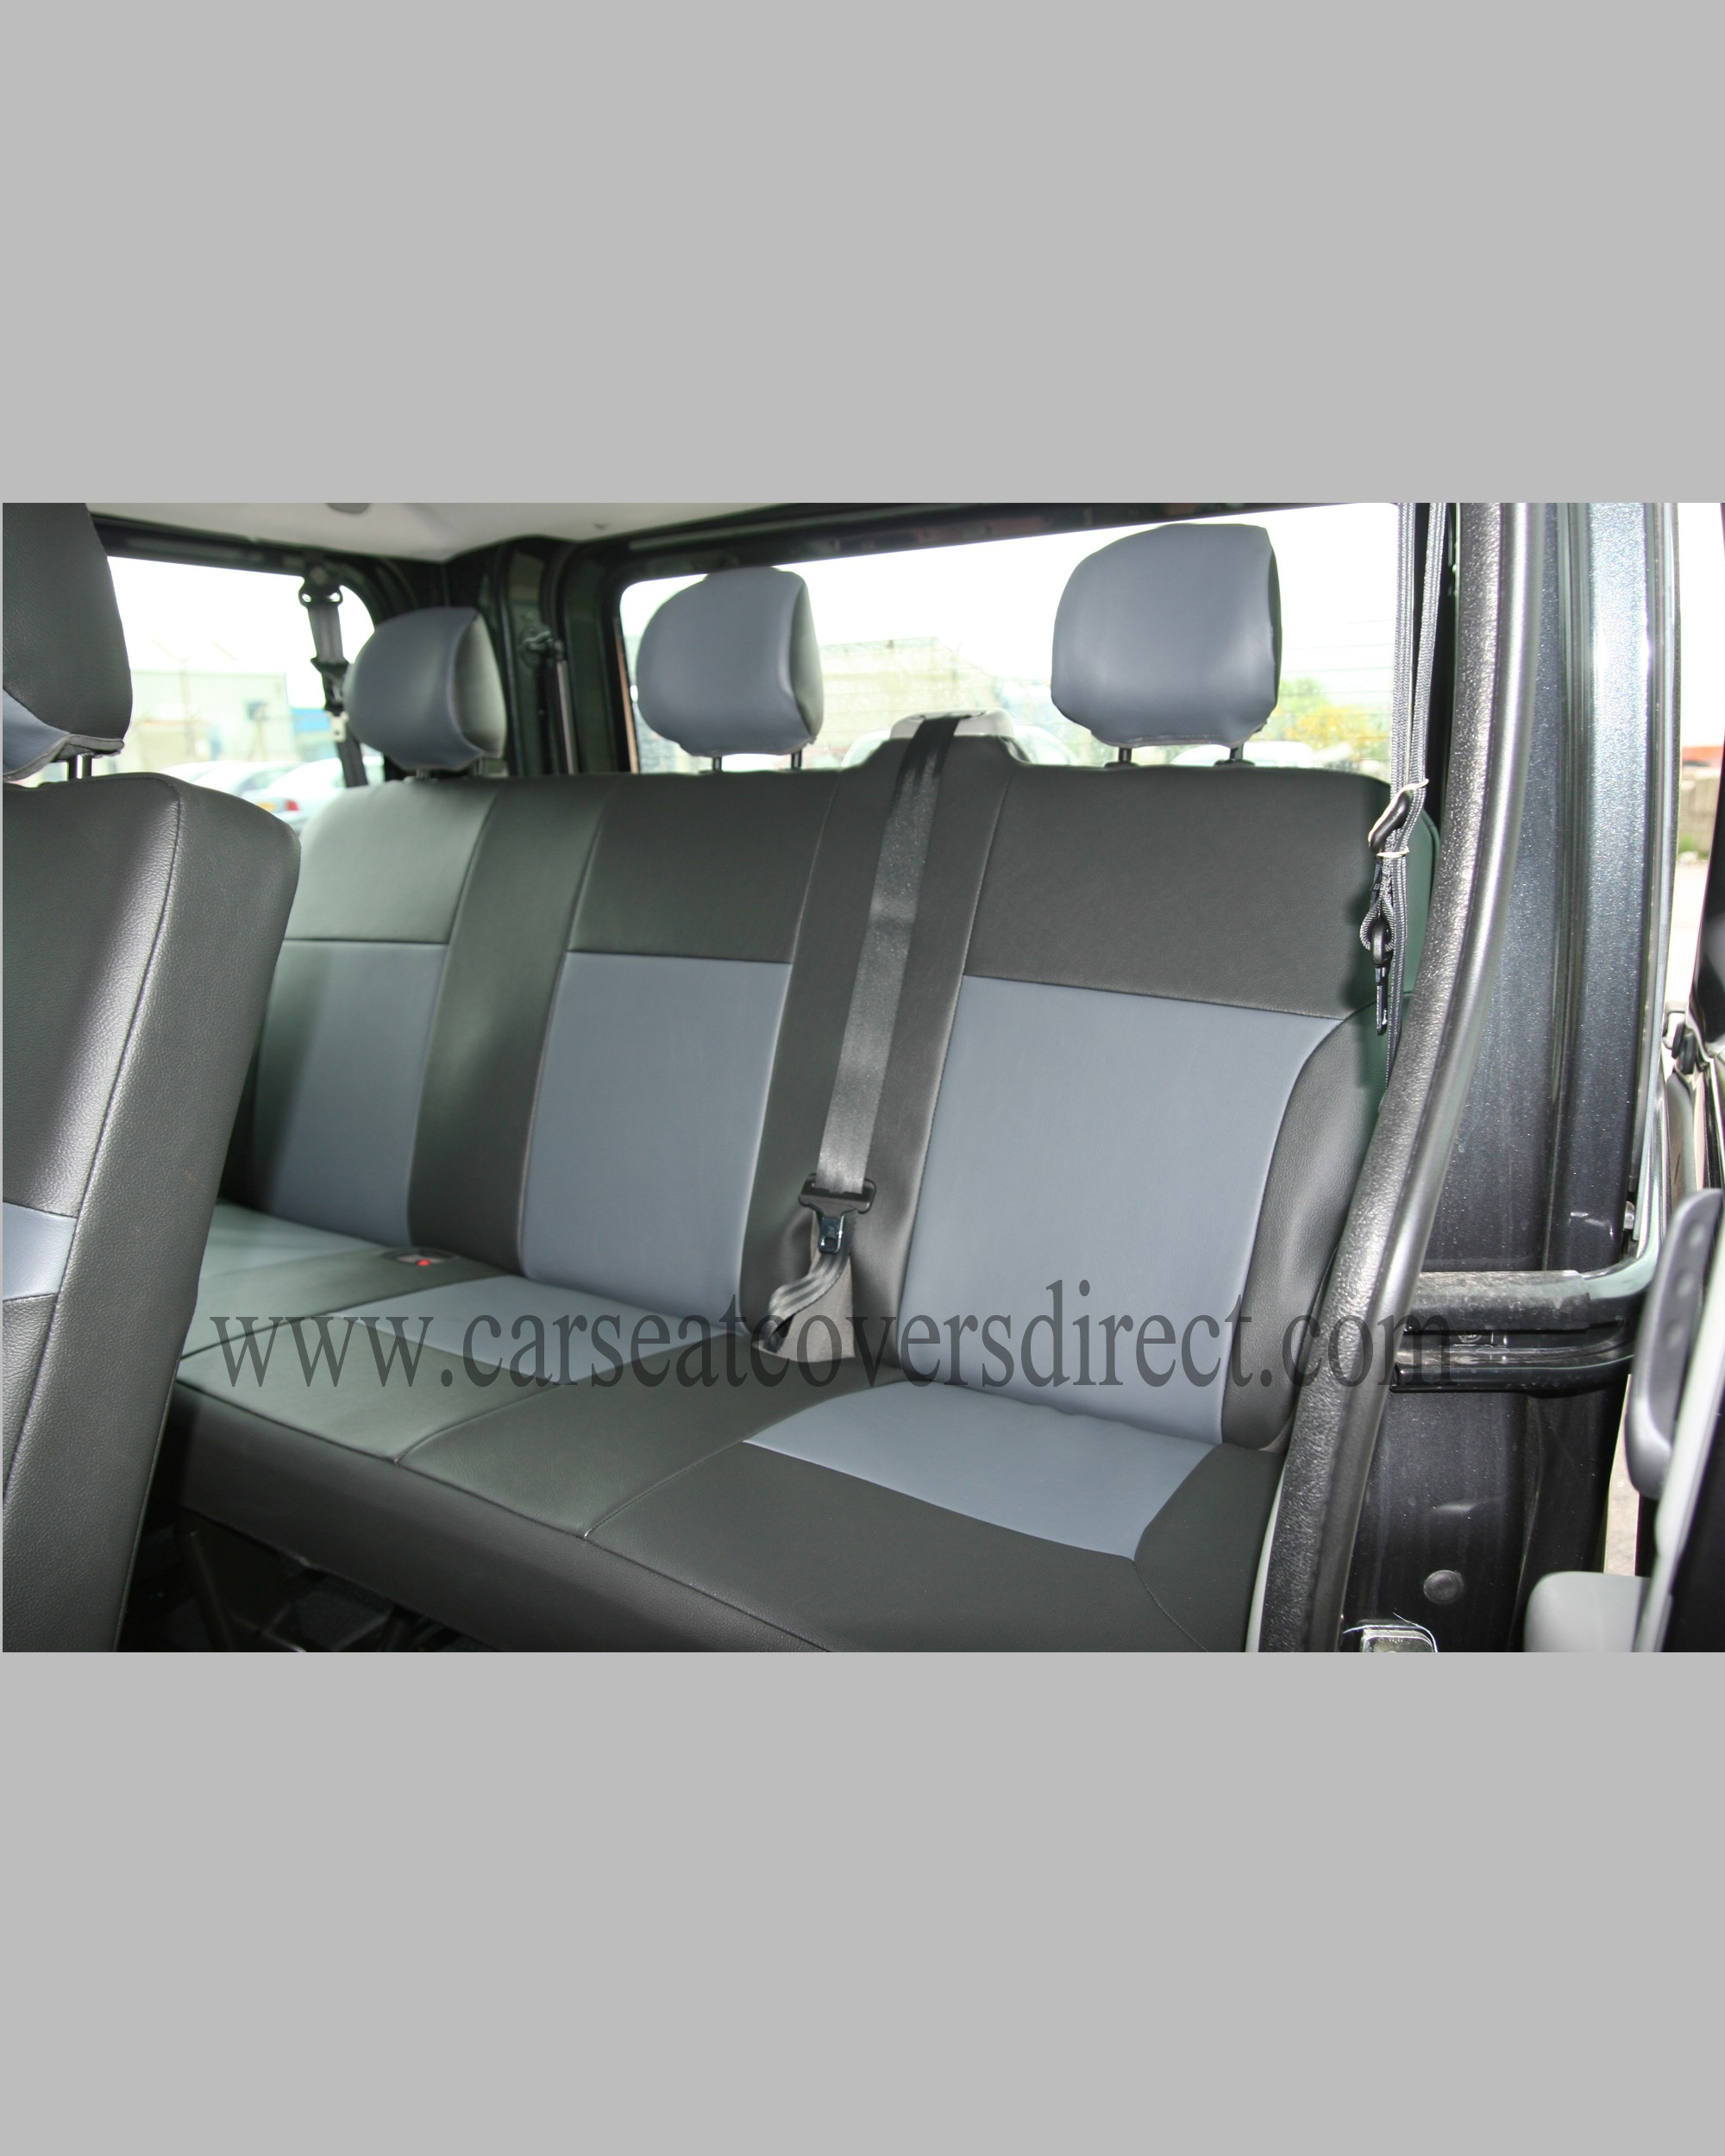 Renault Trafic 9 Seater Tailored Seat Covers Car Seat